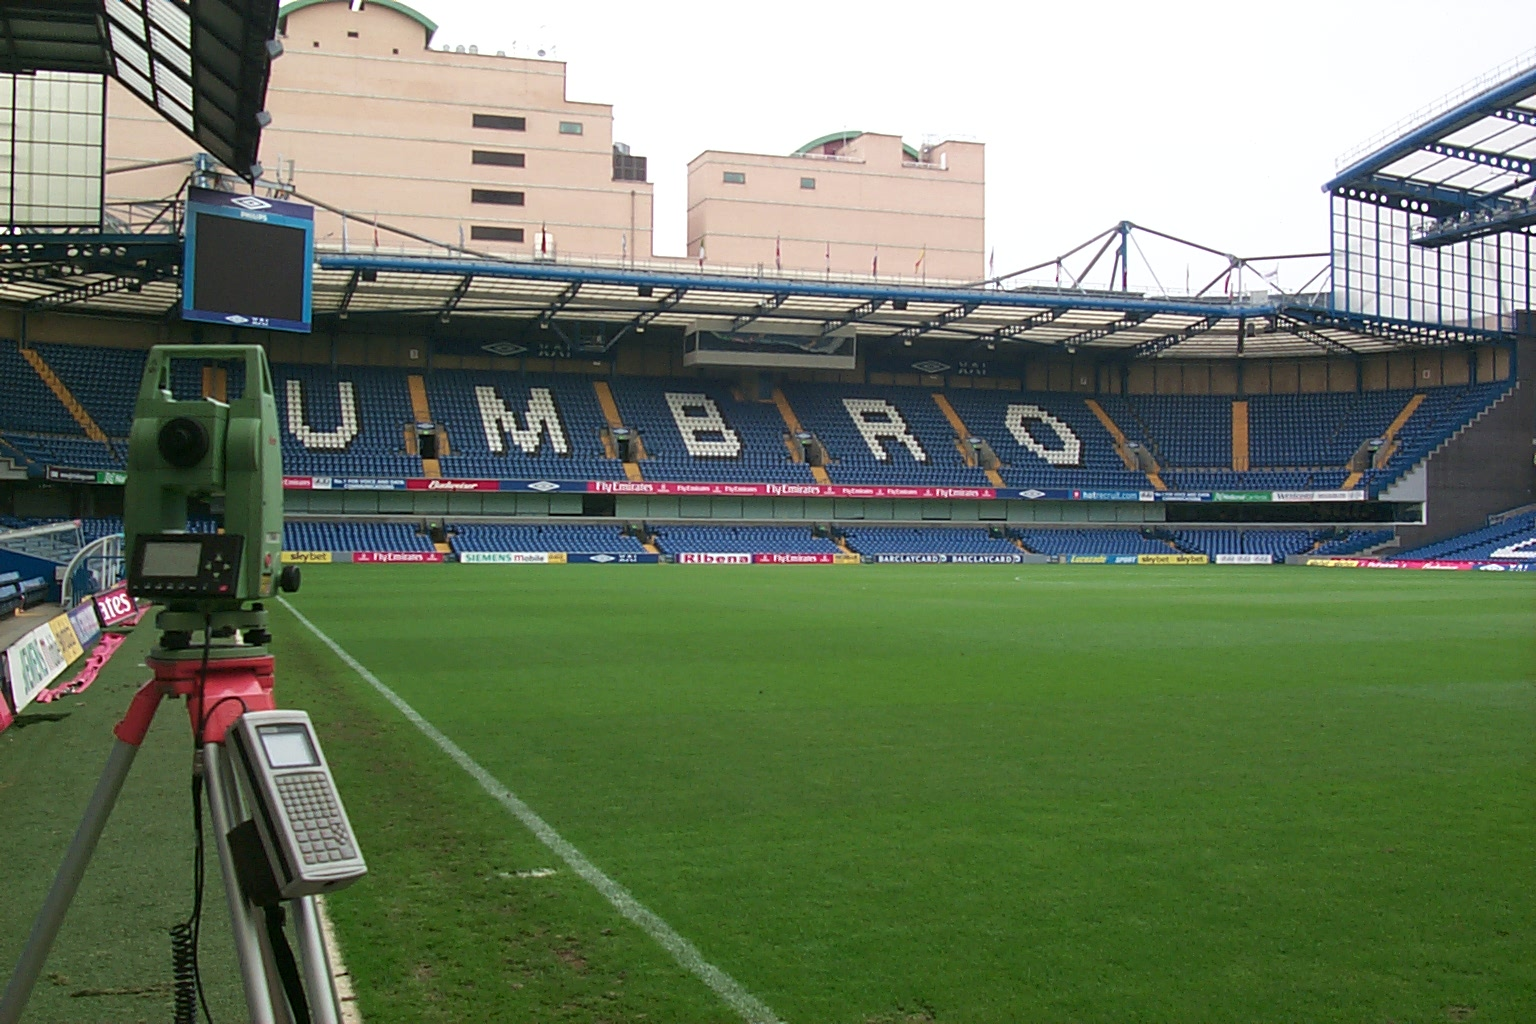 Chelsea FC pitch survey